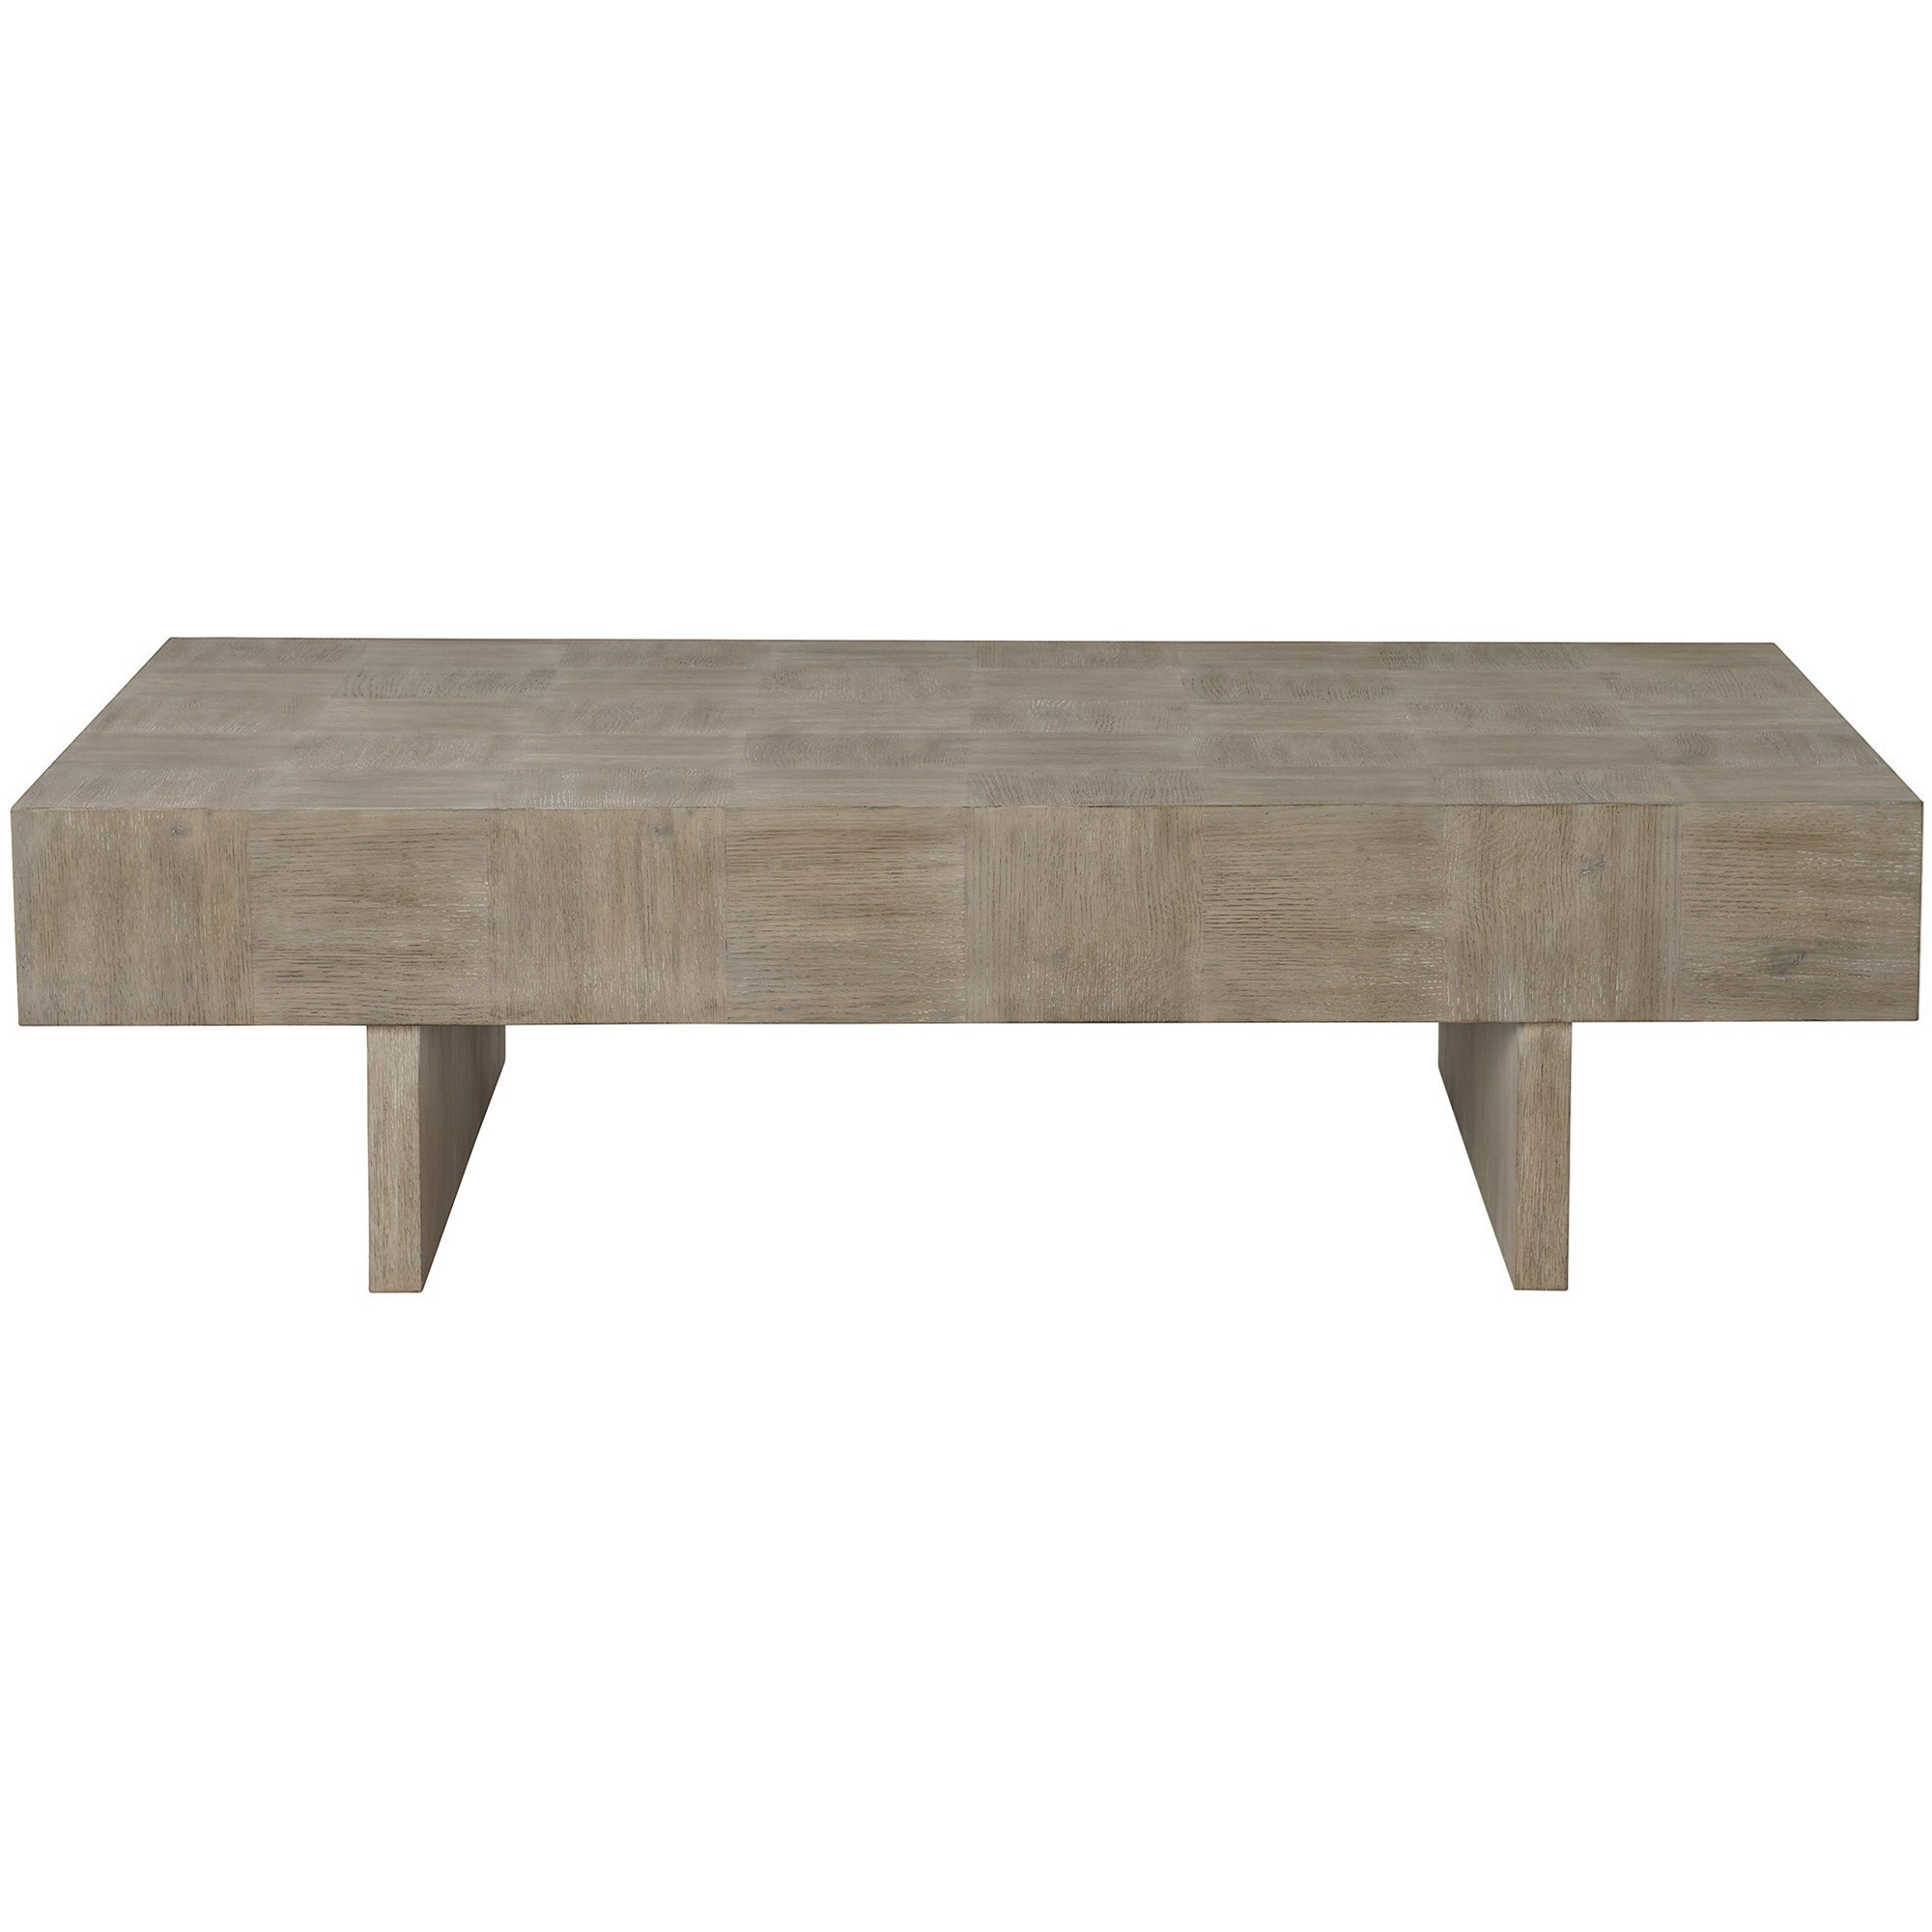 Fairgrove Cocktail Table by Bernhardt at Baer's Furniture